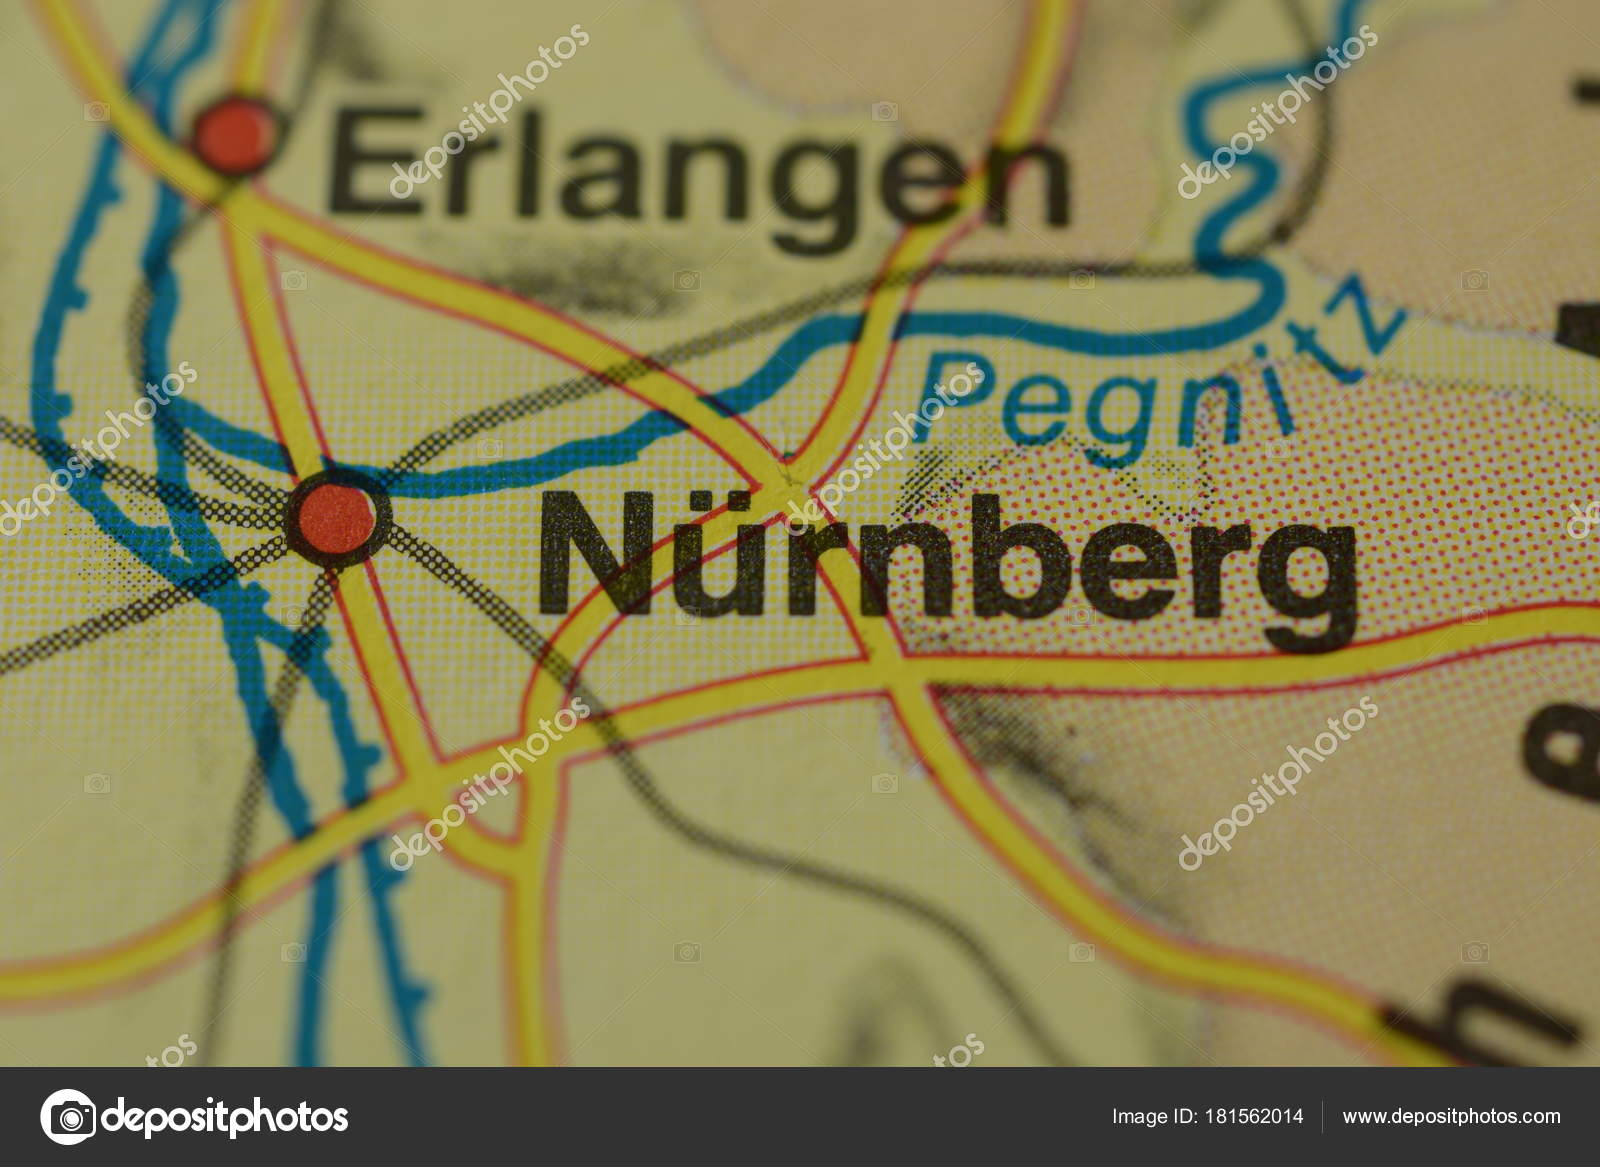 Map Of Germany Nuremberg.City Name Nrnberg Nuremberg Germany Map Stock Photo C Photographer